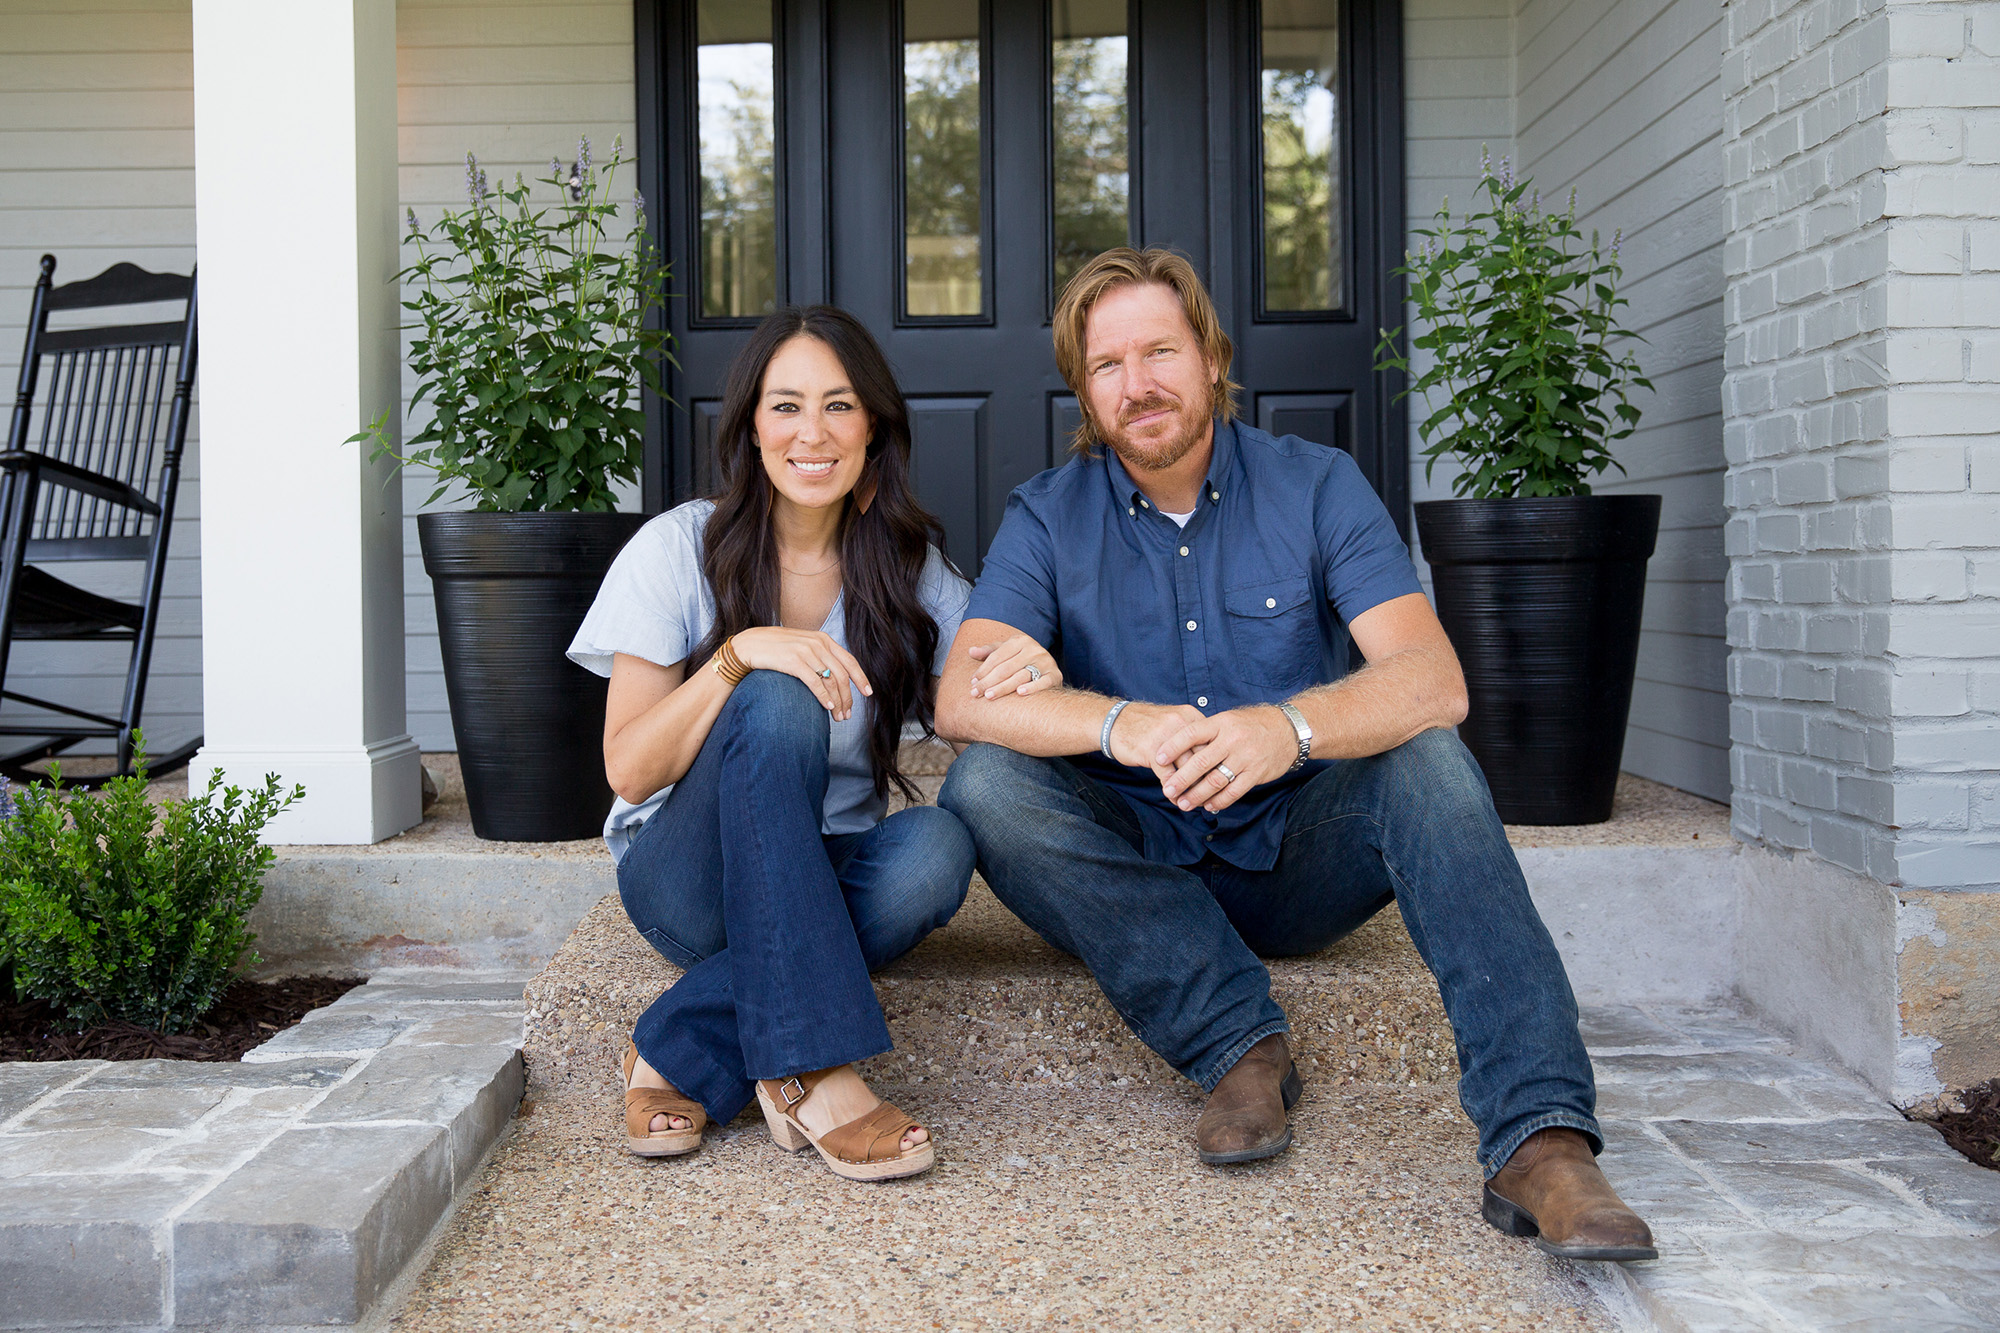 Chips Et Joanna Gaines chip and joanna gaines: our family comes first | people